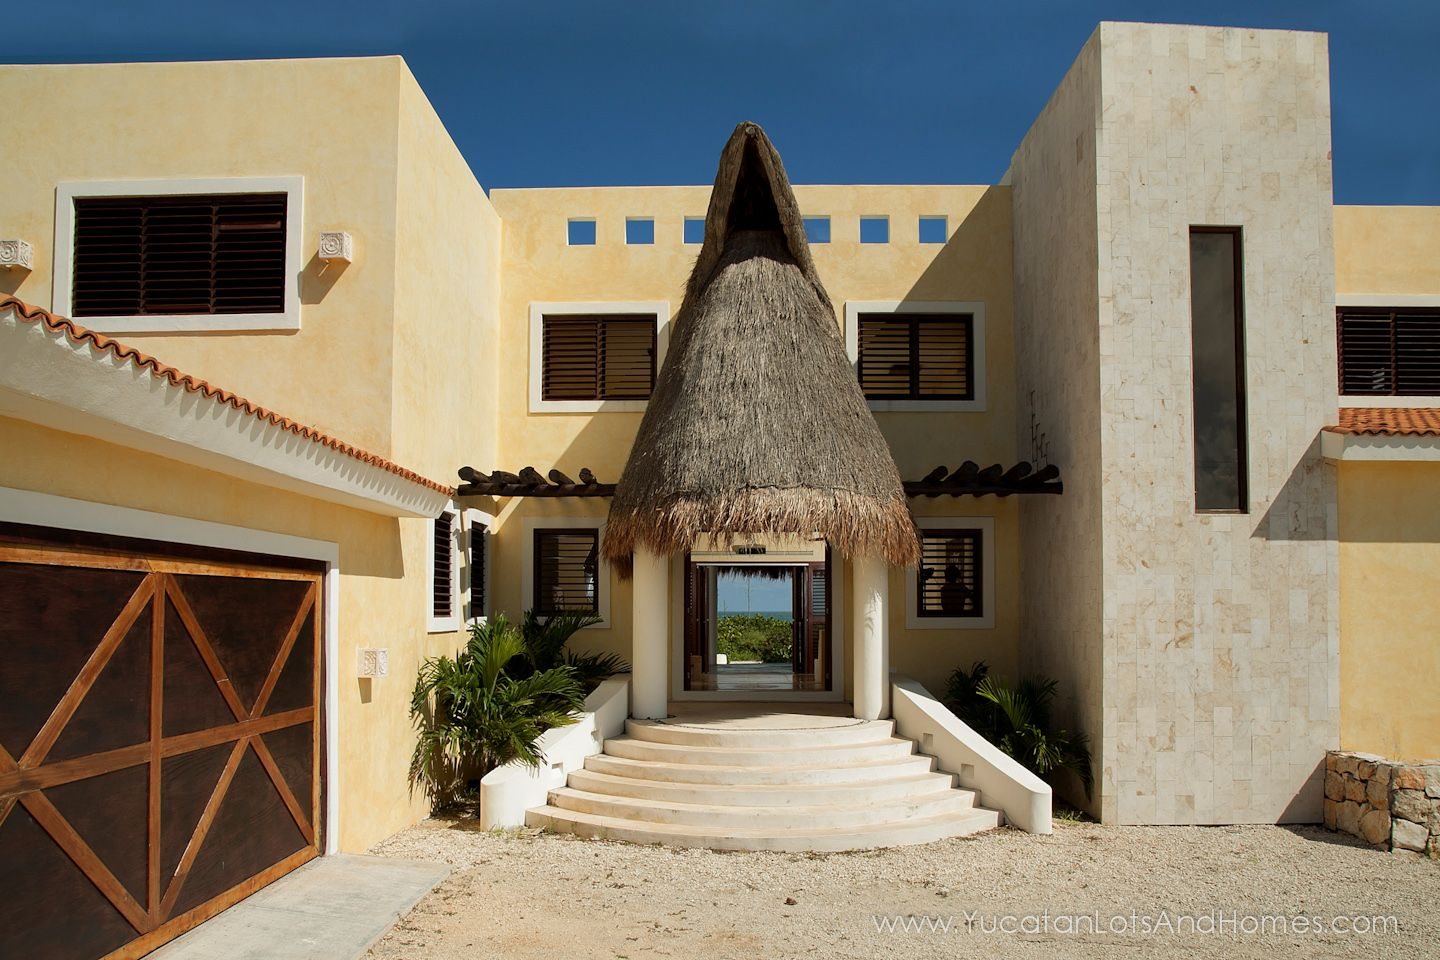 Casa La Palapa, a Luxury Beachfront Home, is available for